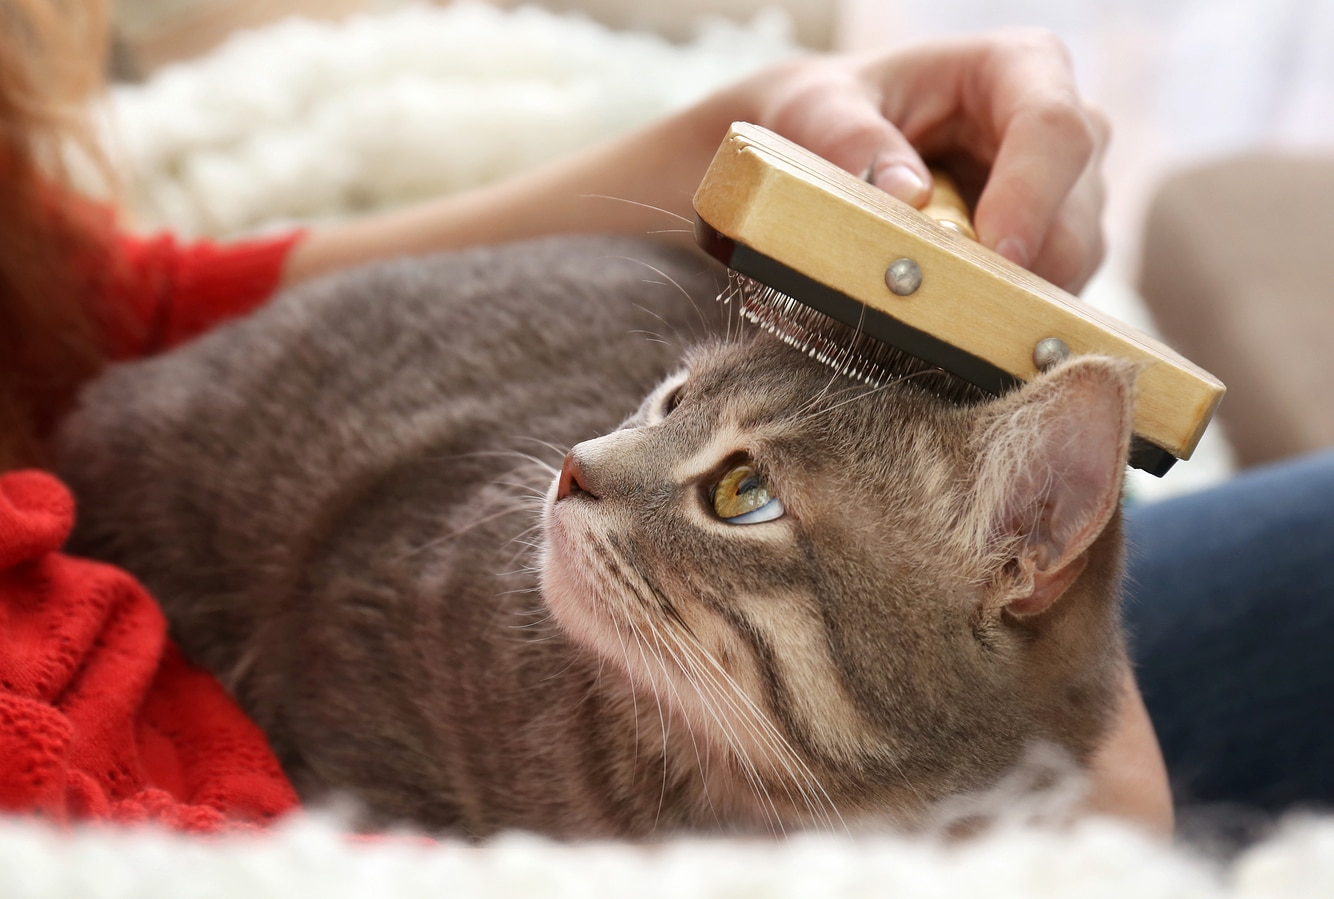 Woman combing cat with brush on couch, close up